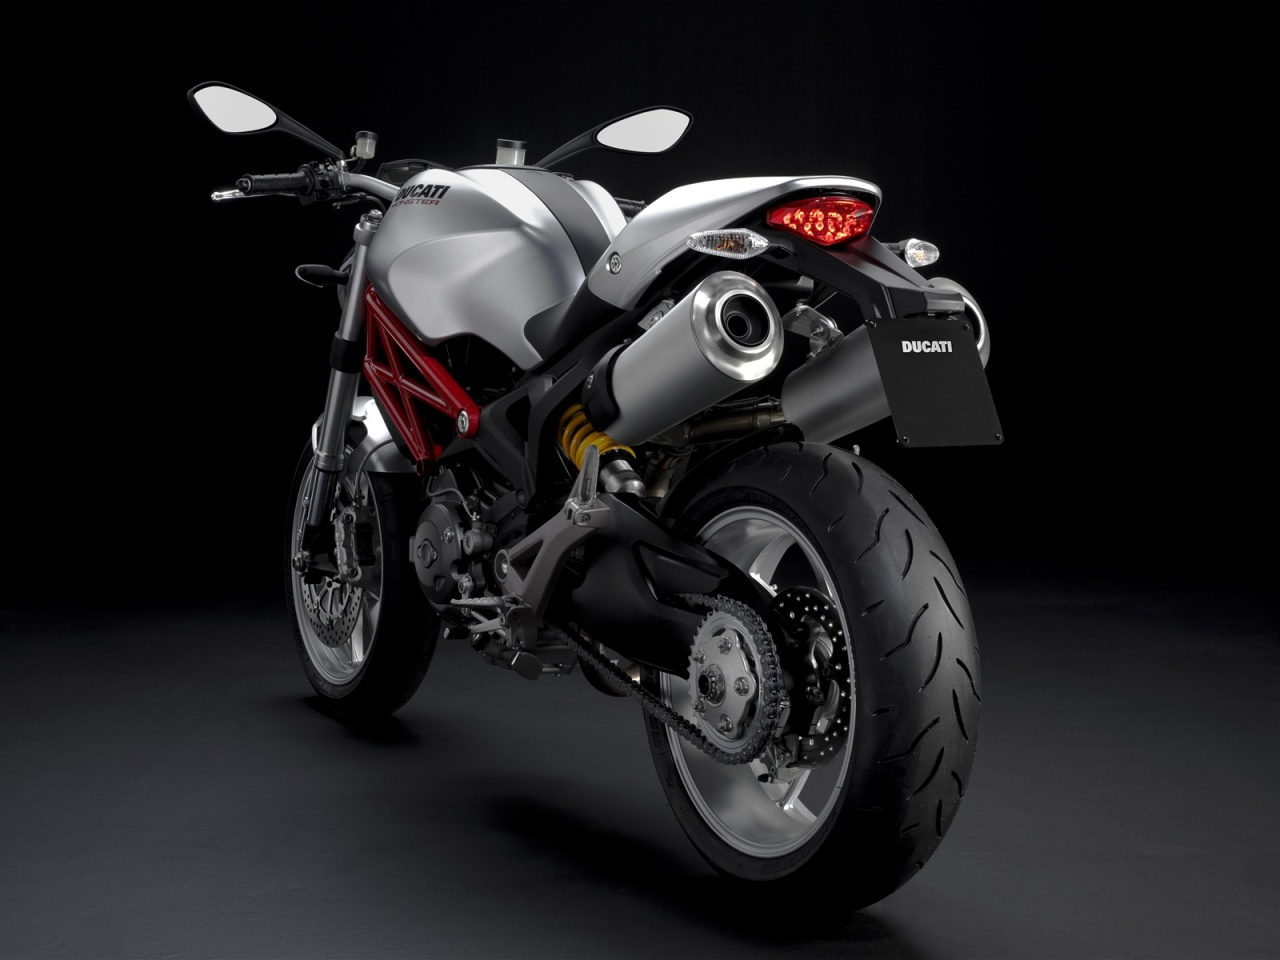 Ducati Monster 1100 Rear Wallpapers In Jpg Format For Free Download